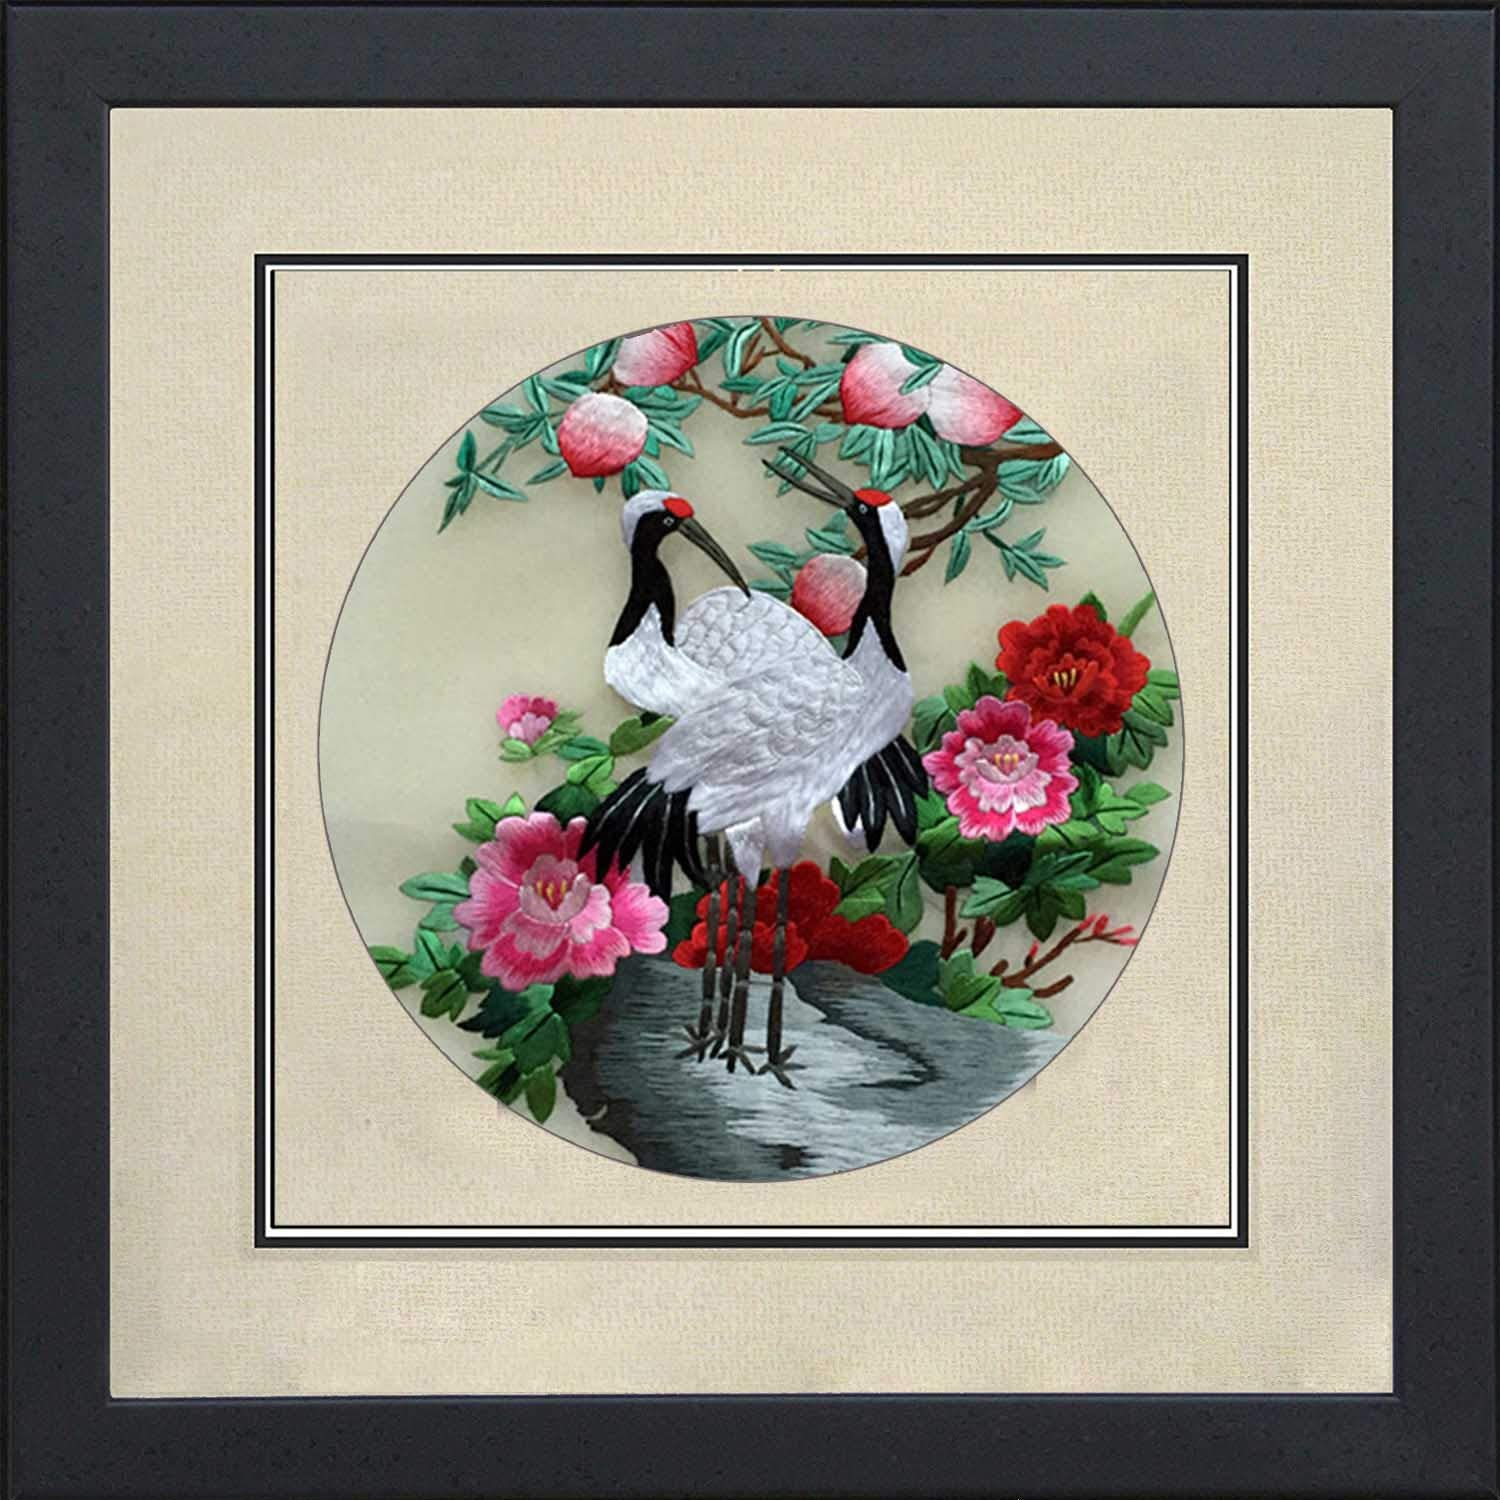 Silk Art Pure Handmade Silk Thread Embroidery Framed Wall Decor 13*13Inch , Pine Trees and Blessing Cranes Painting, Fashion Creative Furnishing Oriental Asian Feng Shui Wall Art 31011WF